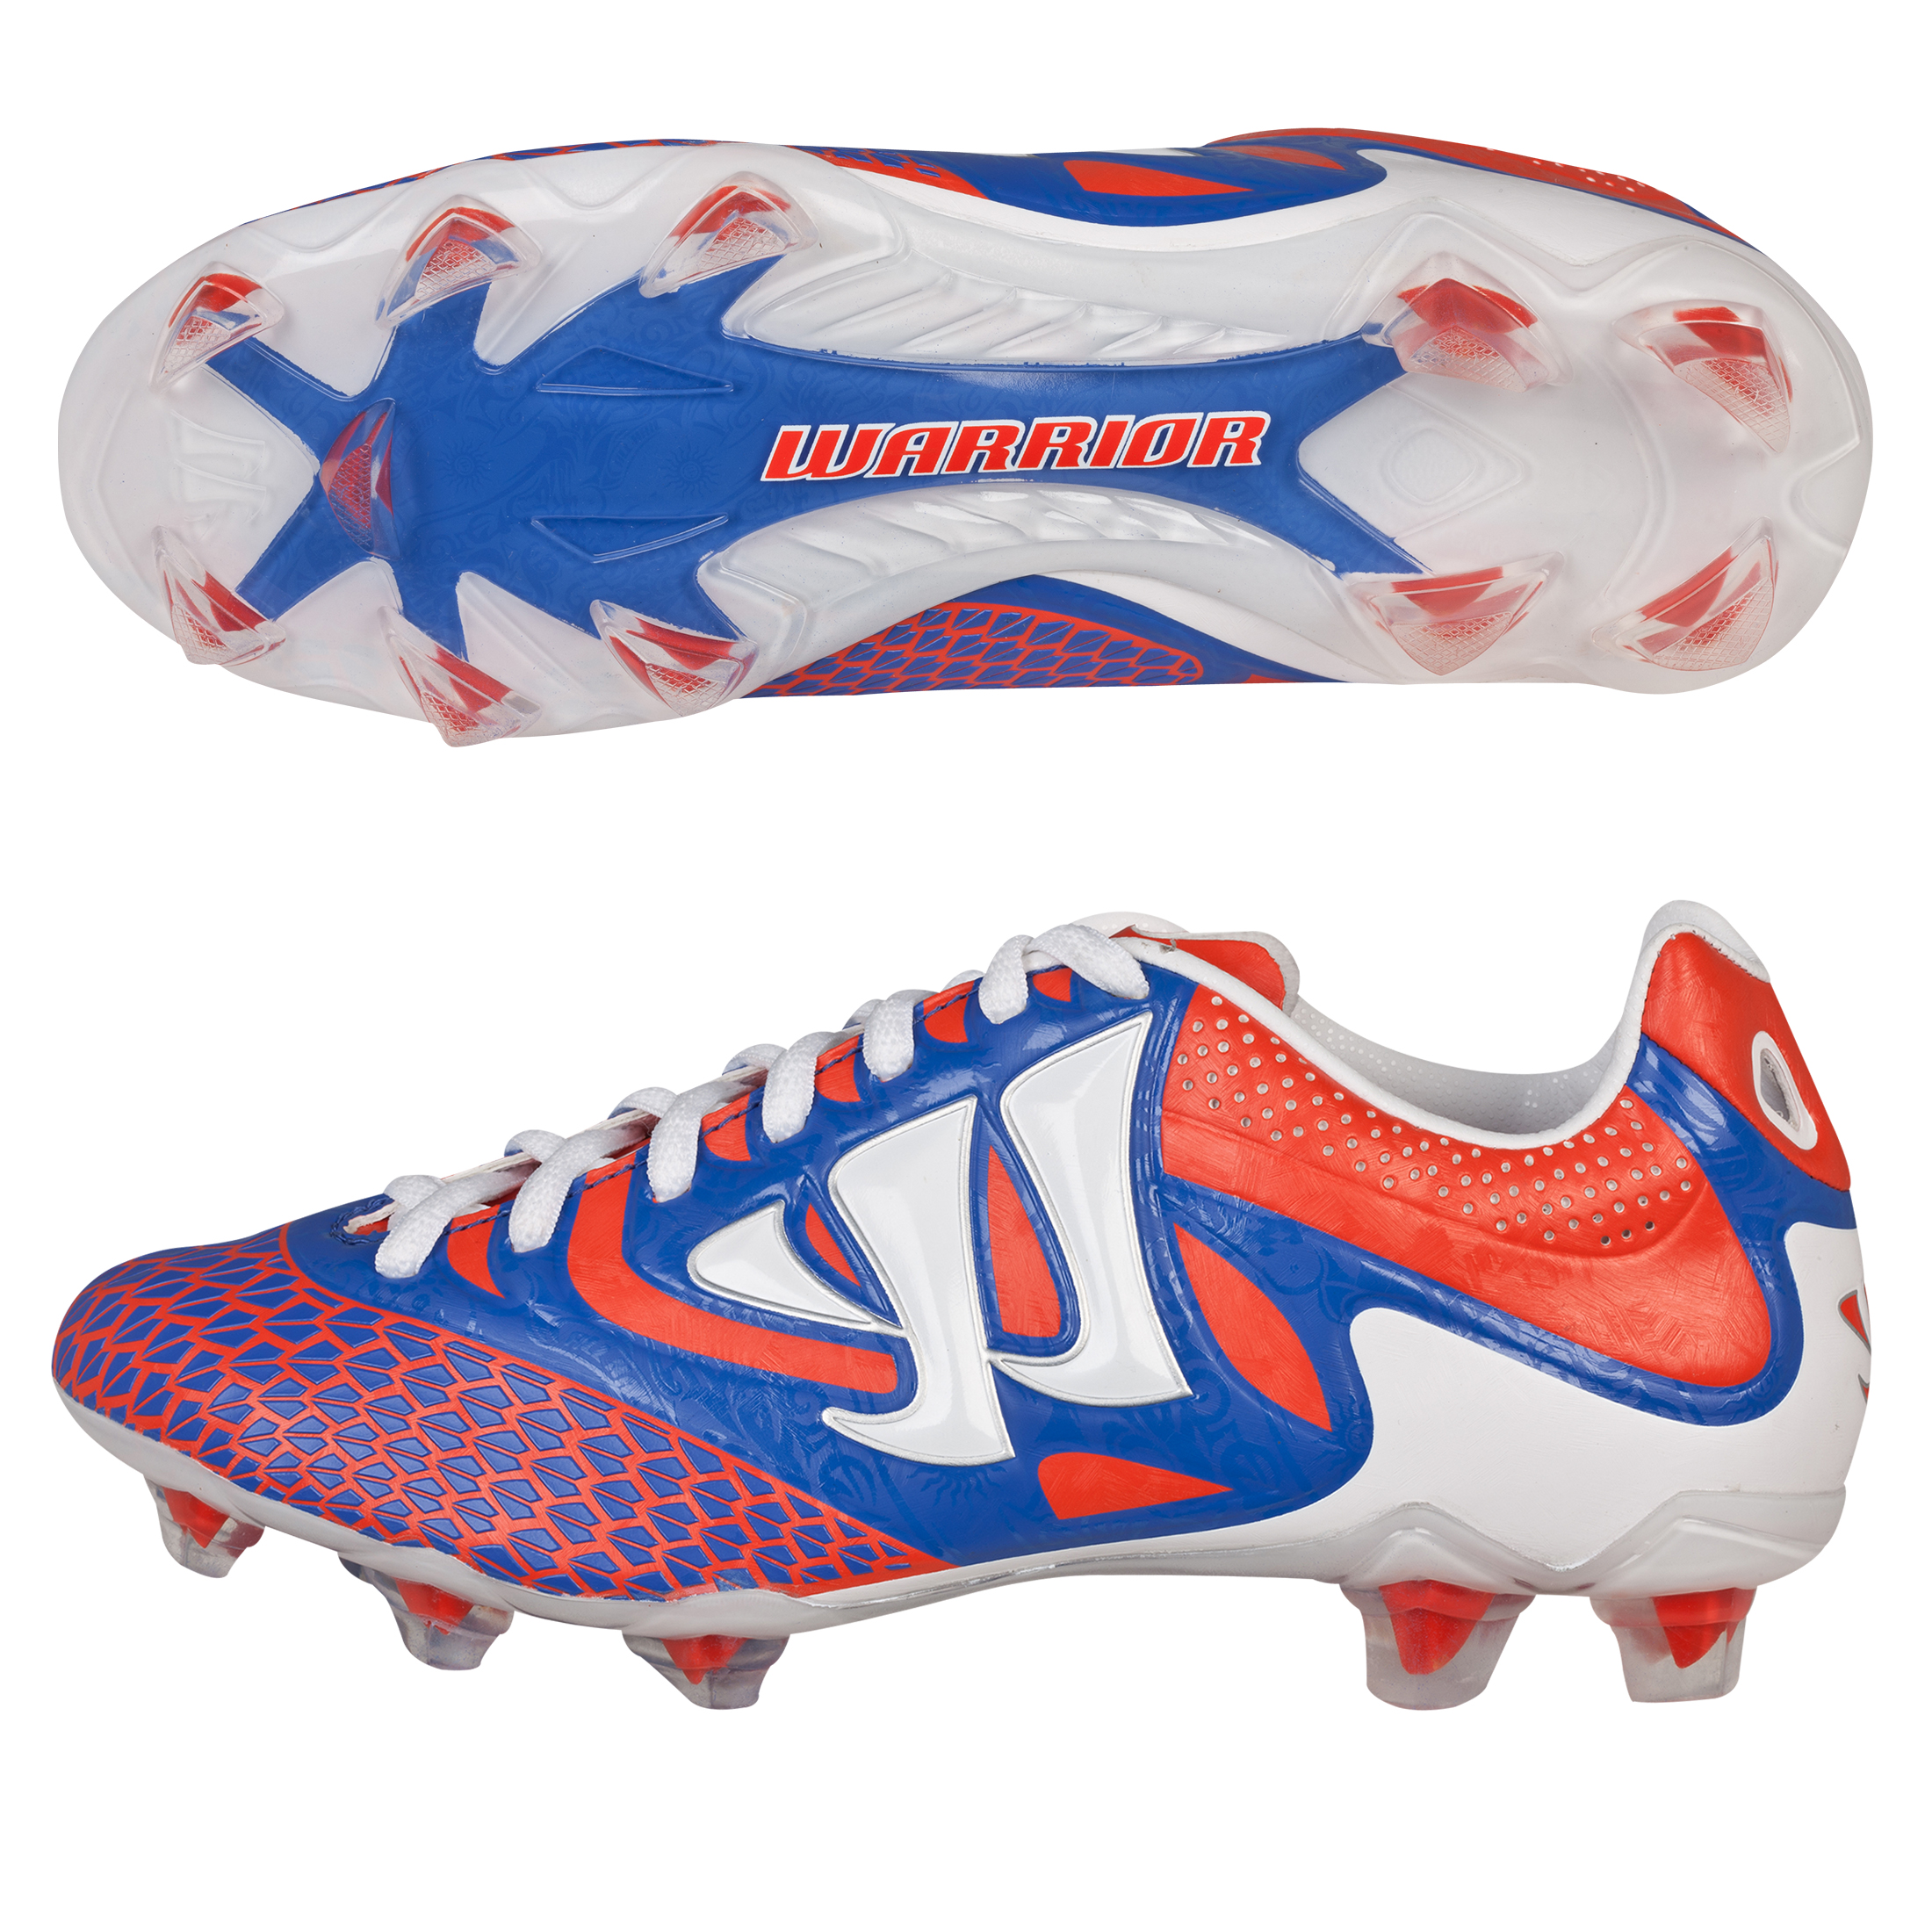 Warrior Sports Skreamer Combat Firm Ground Football Boots - Spicy Orange/Baja Blue/White